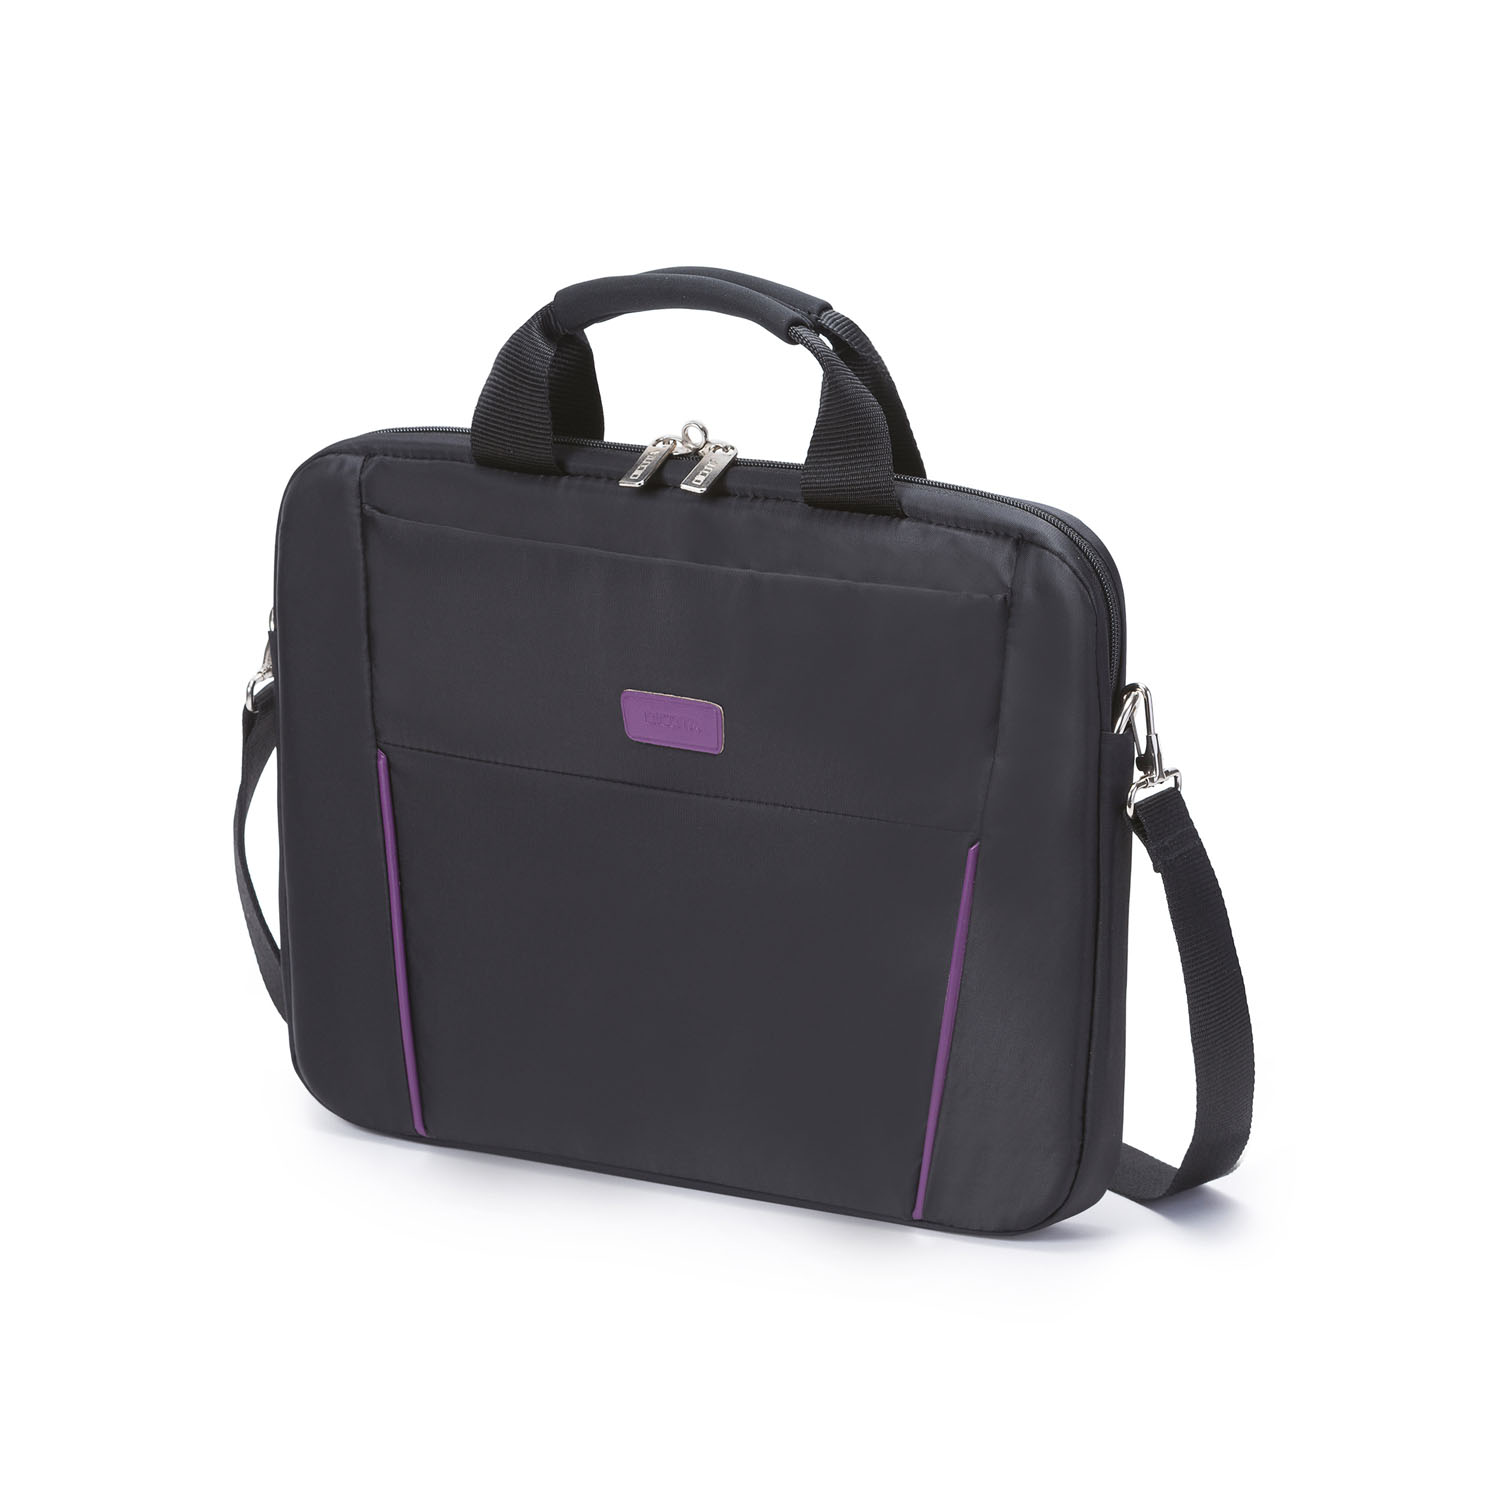 DICOTA Slim Case BASE 12-13.3 black/purple